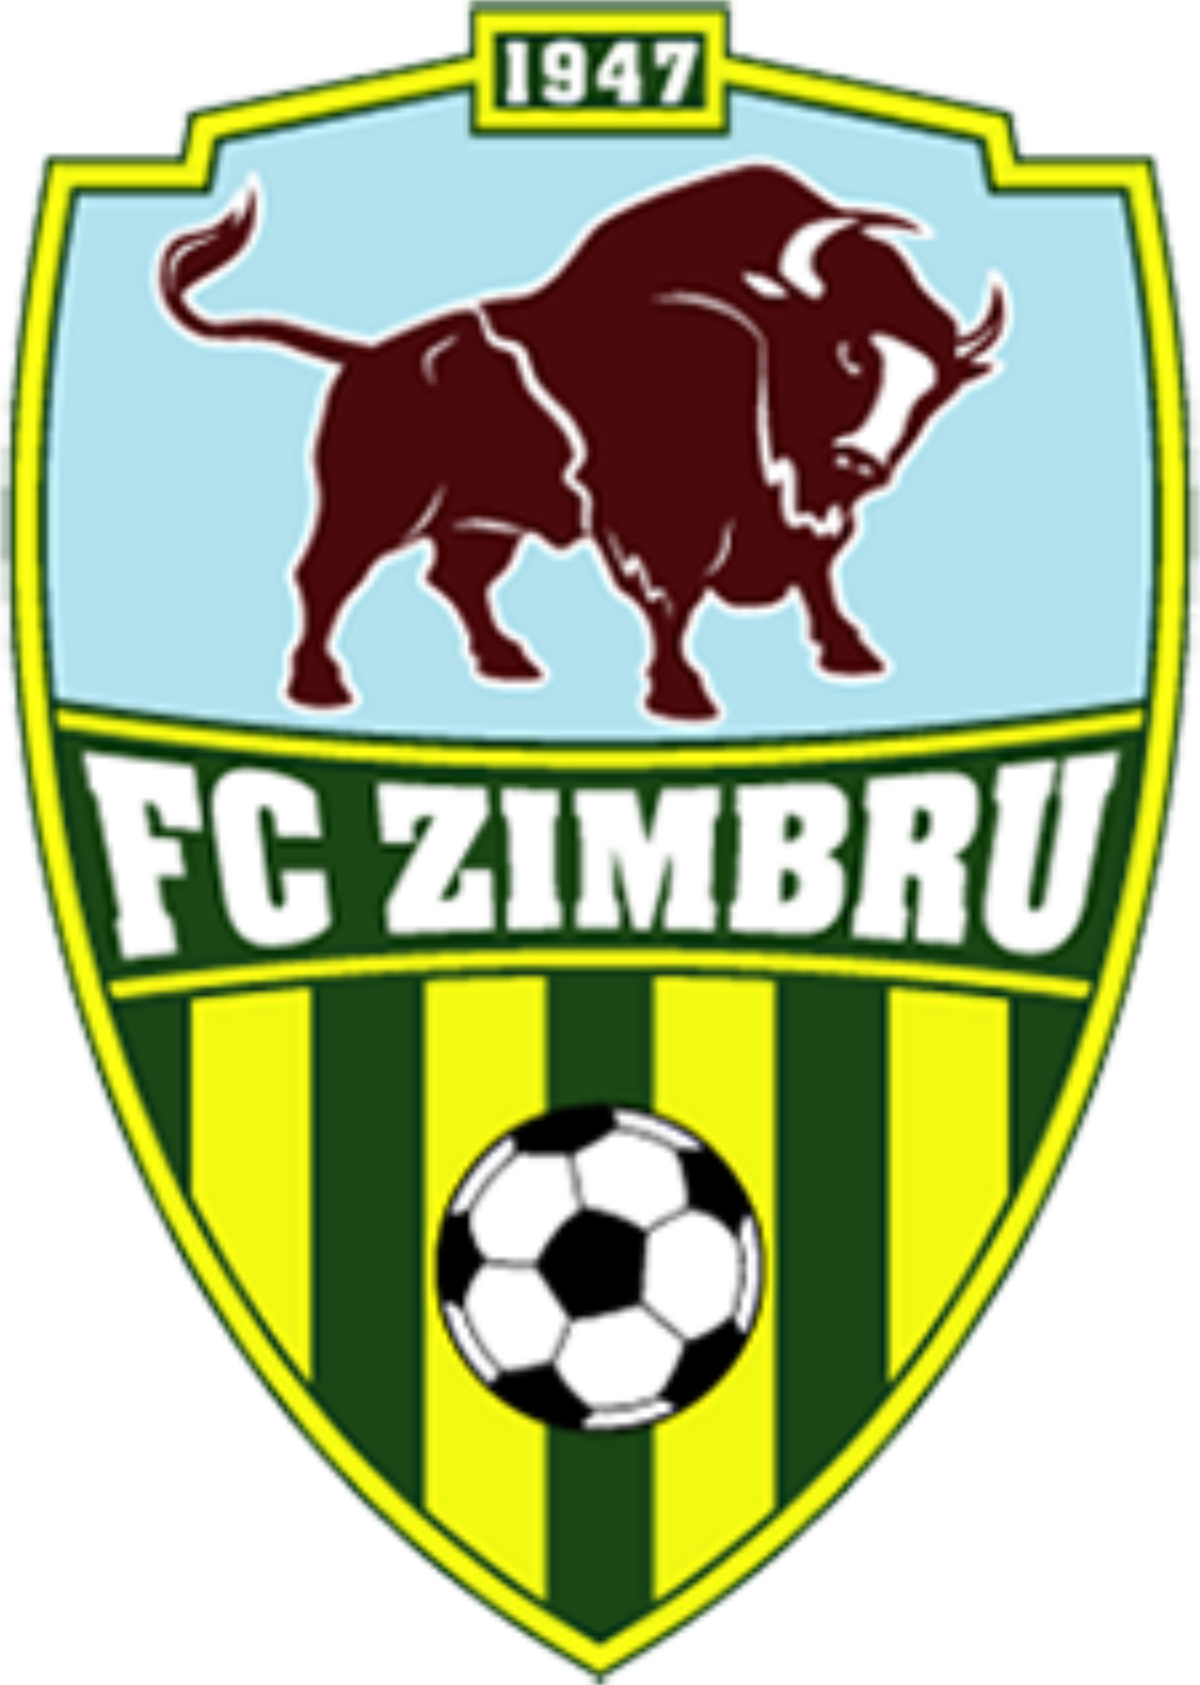 Turkey football federation crest 256 x 256 png image. Fc zimbru chi in